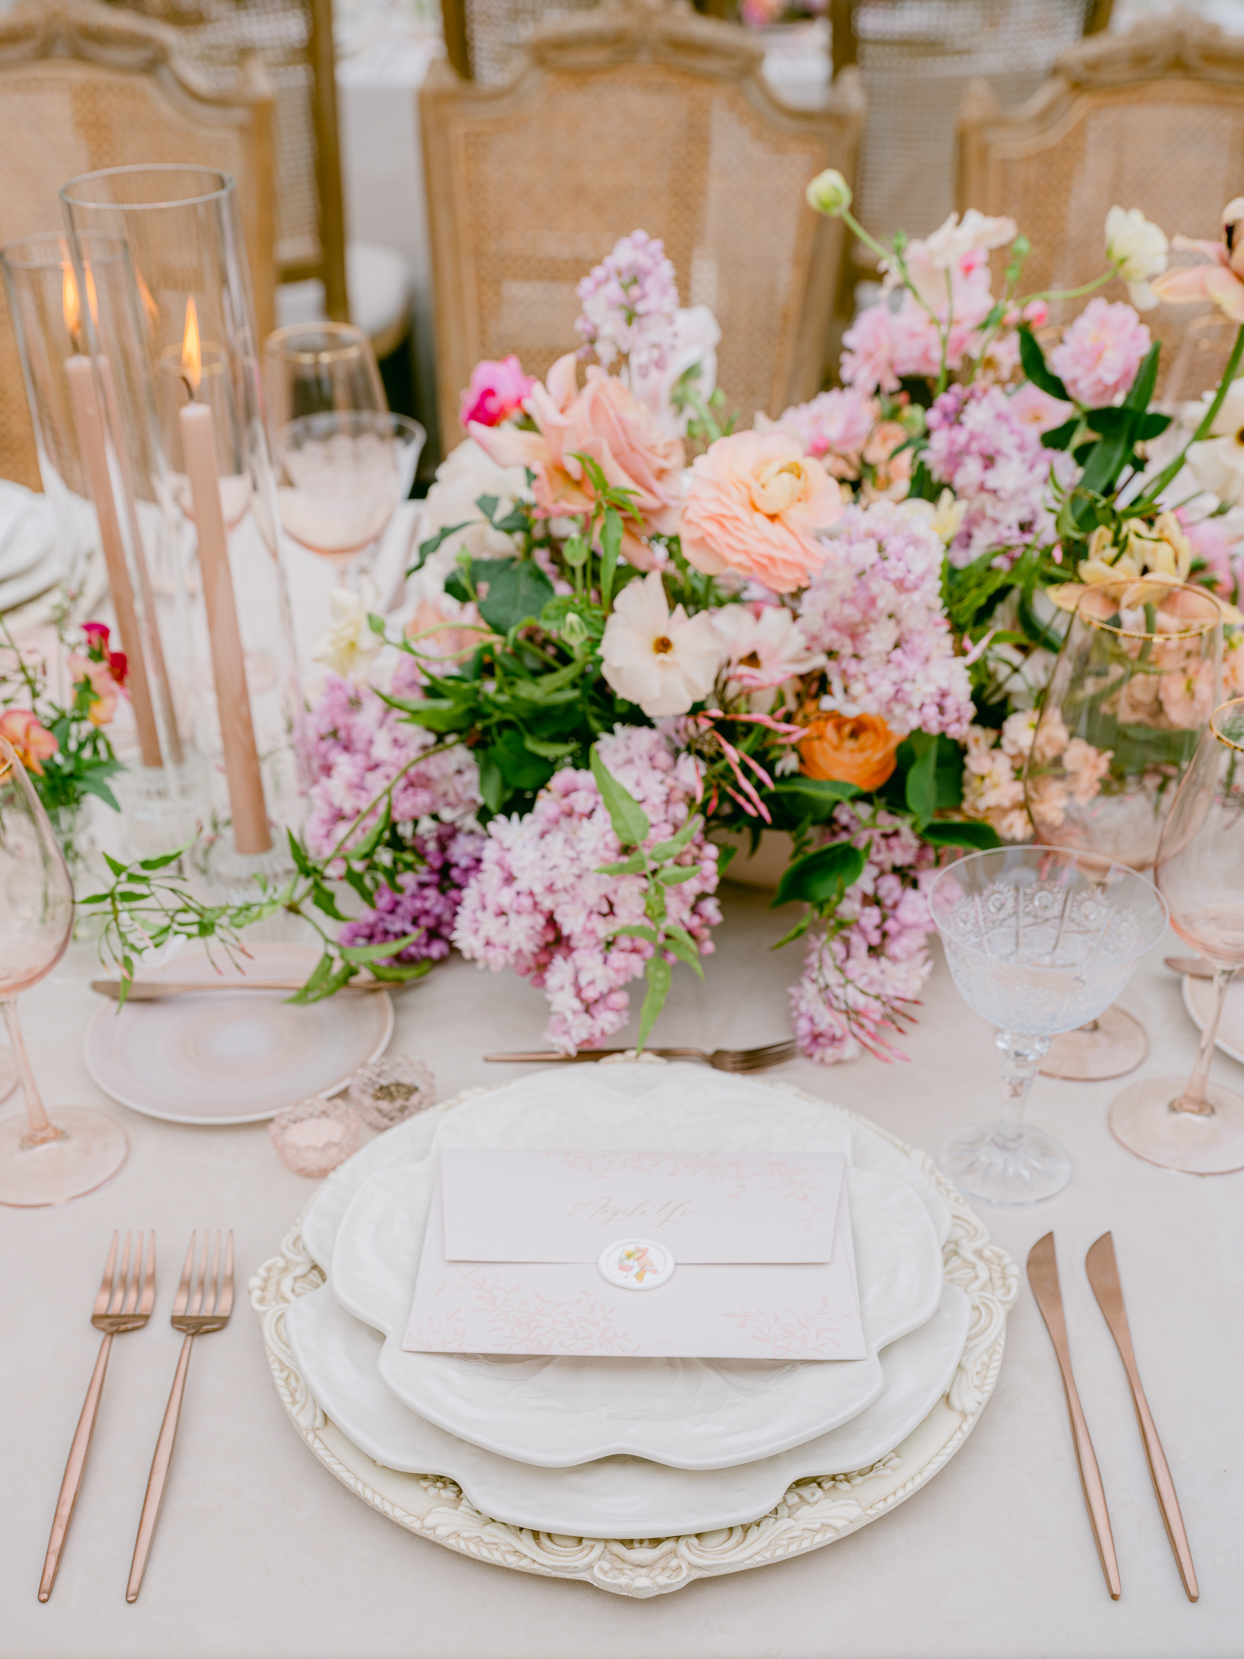 rose gold wedding reception place setting details